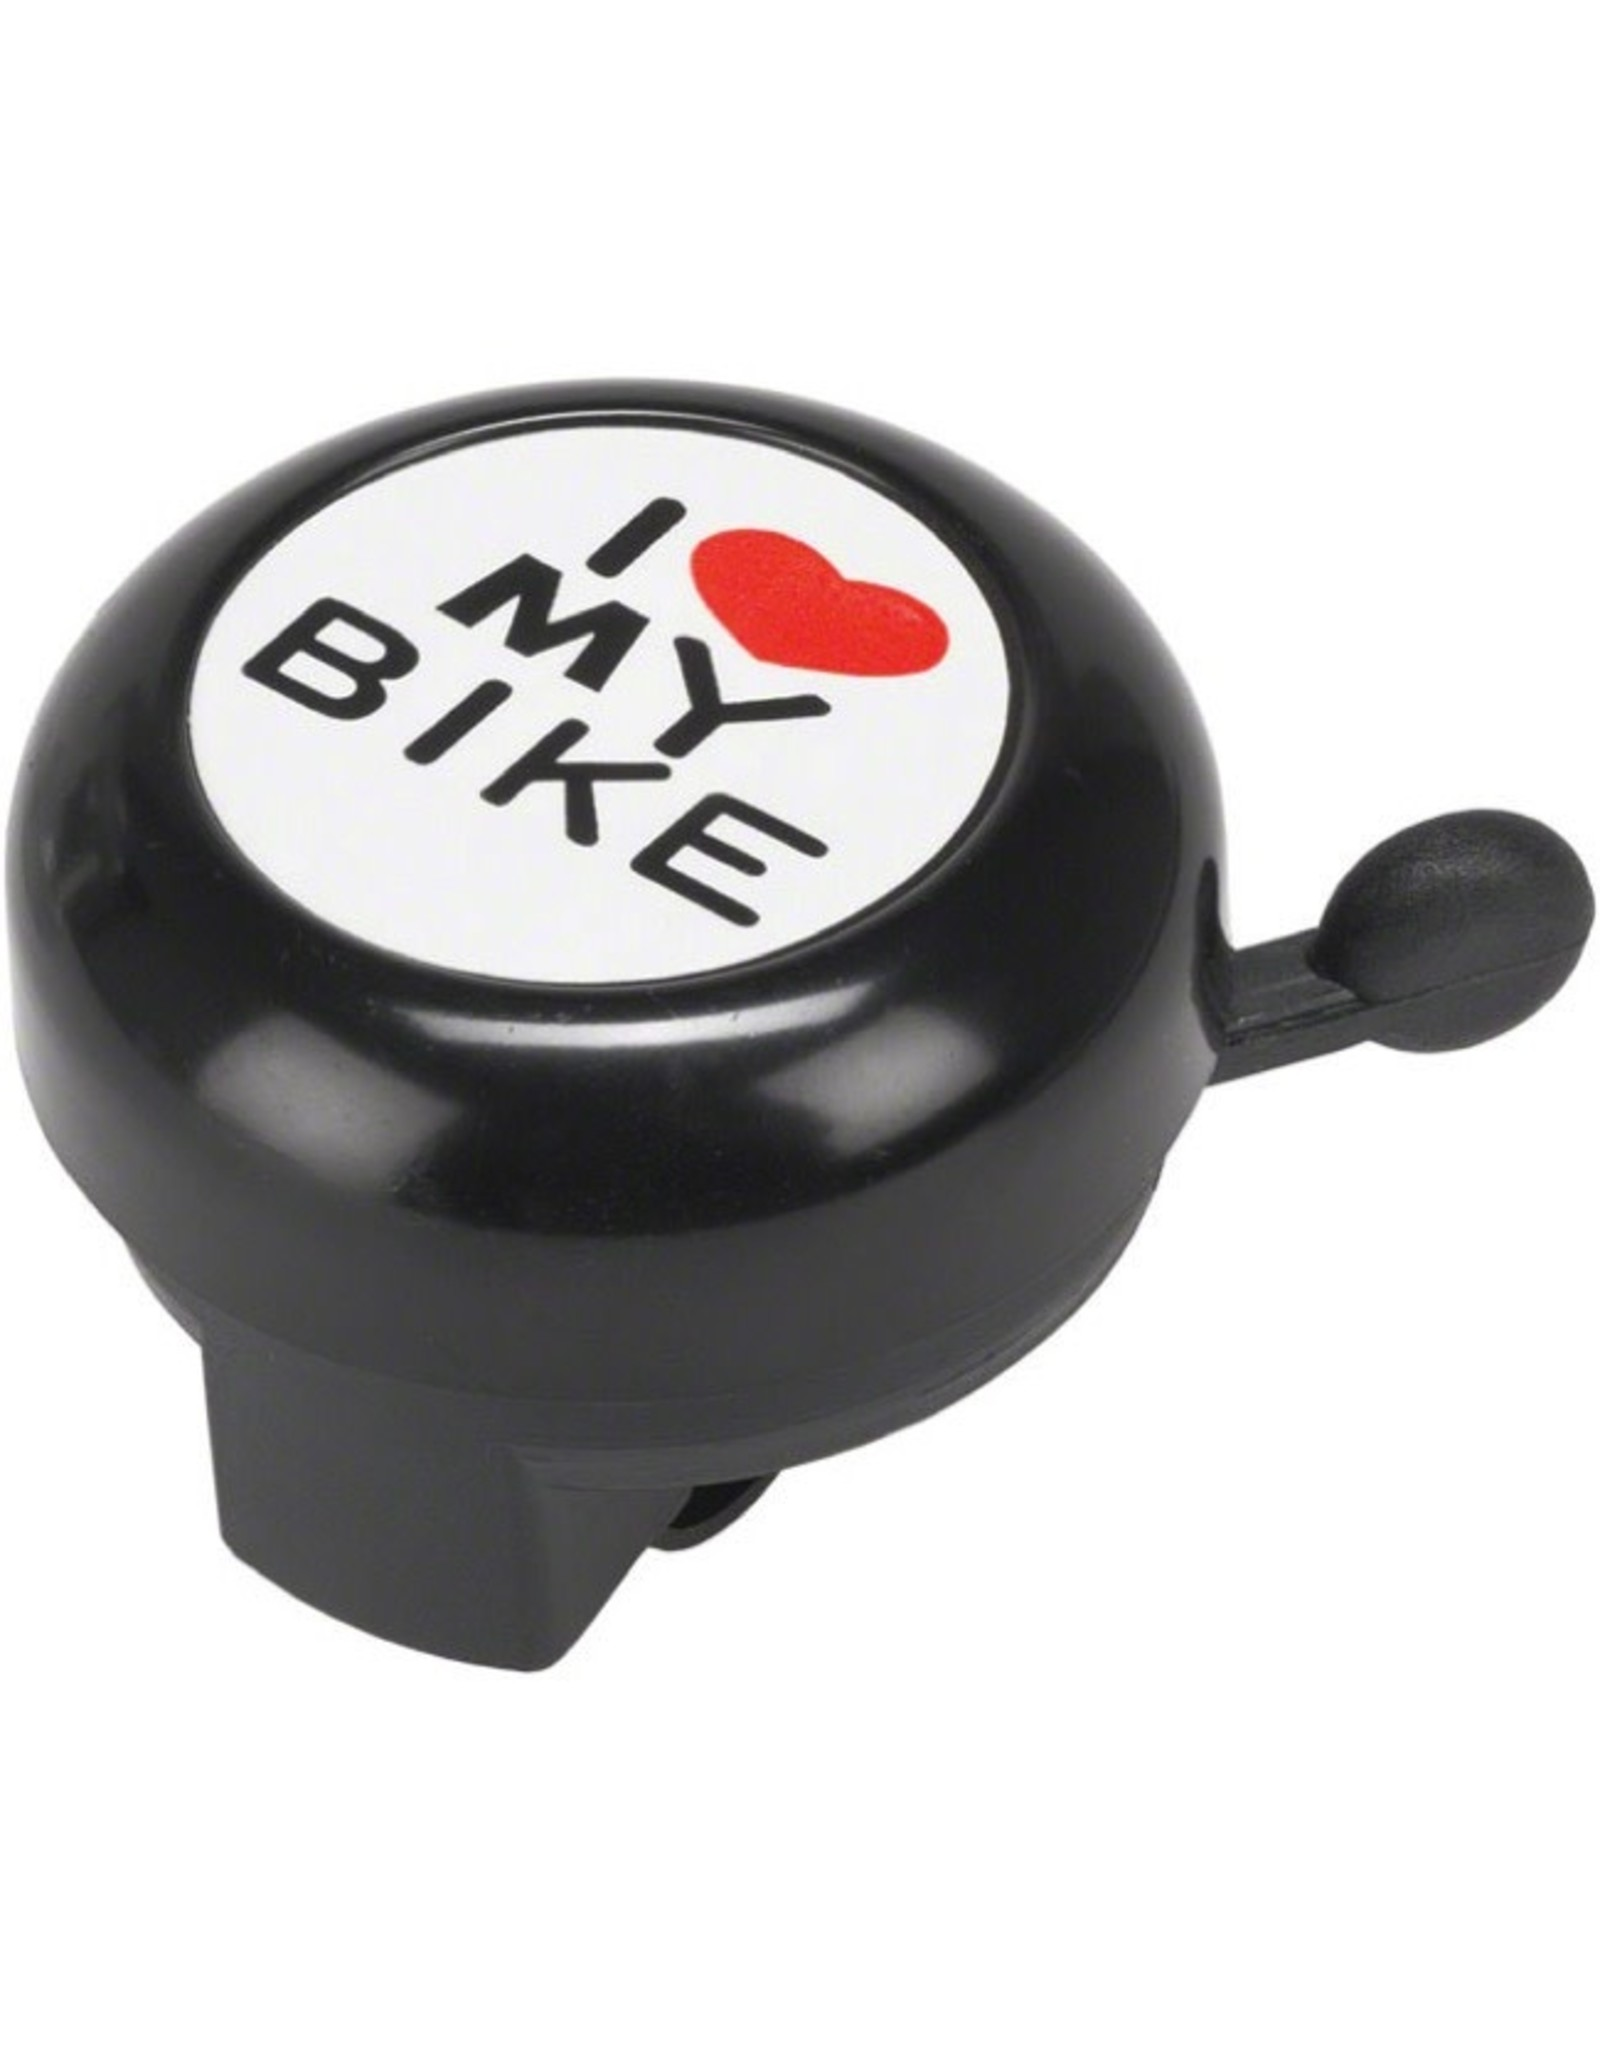 Dimension Dimension I Heart My Bike Bell Black